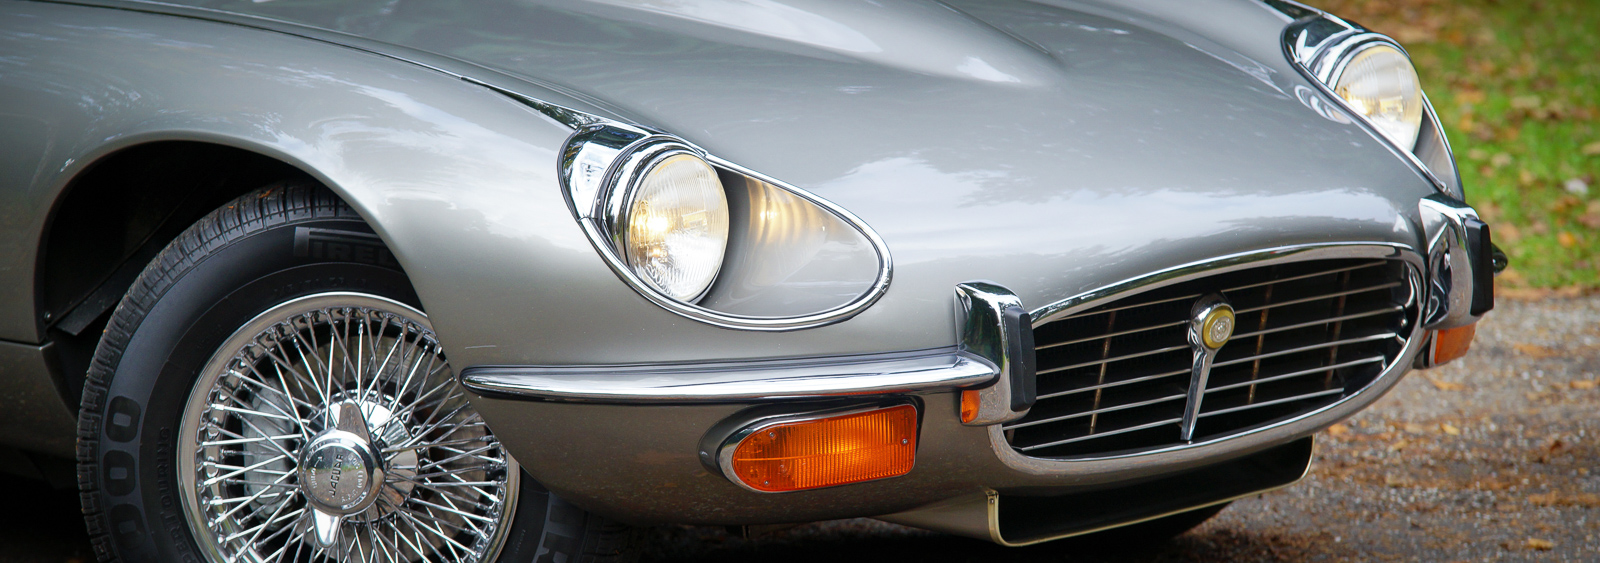 Jaguar-E-type-V12-roadster-1971-11.jpg